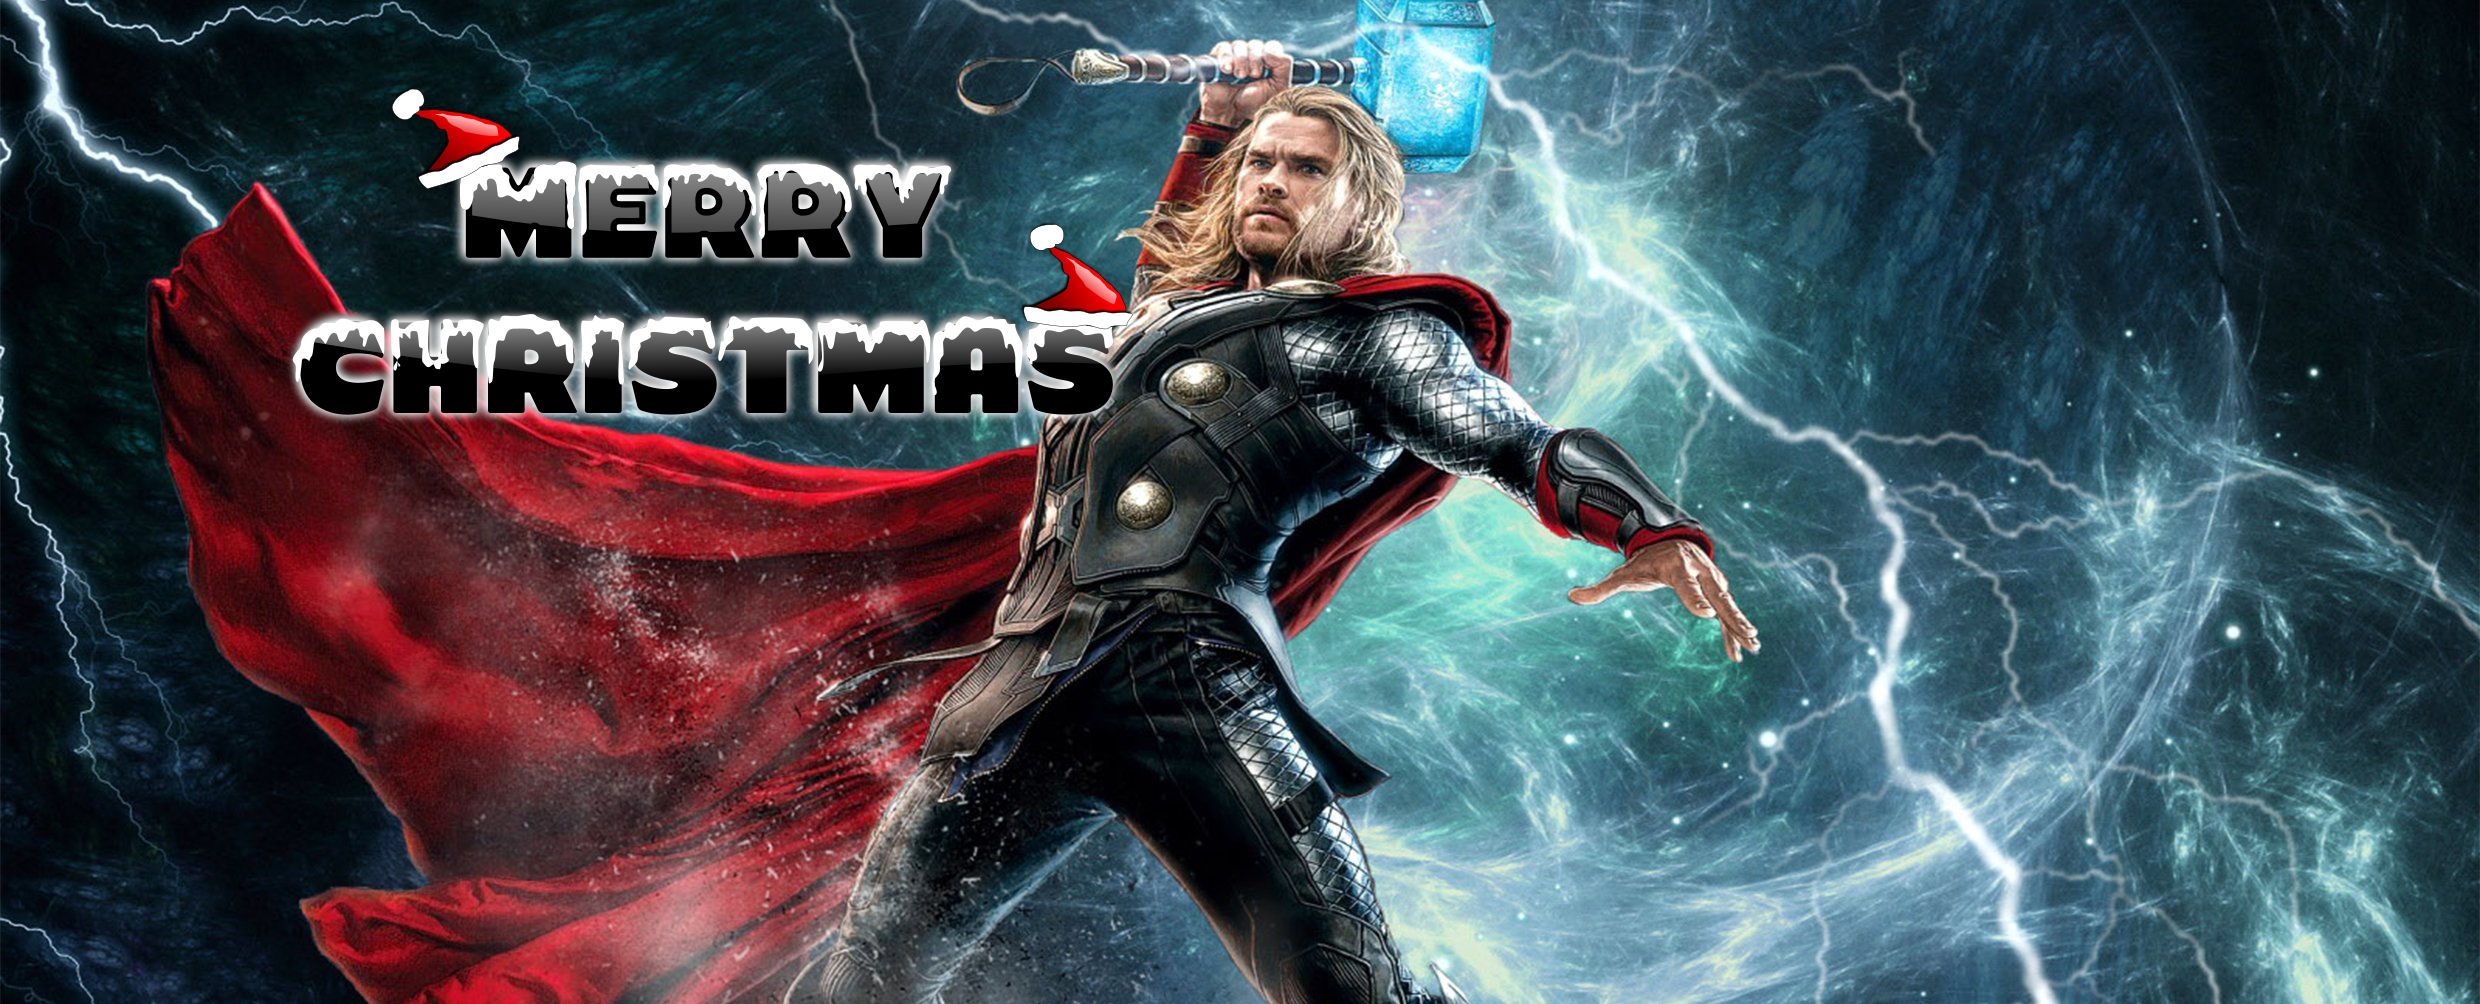 happy merry christmas wishes super hero thor kids hd wallpaper